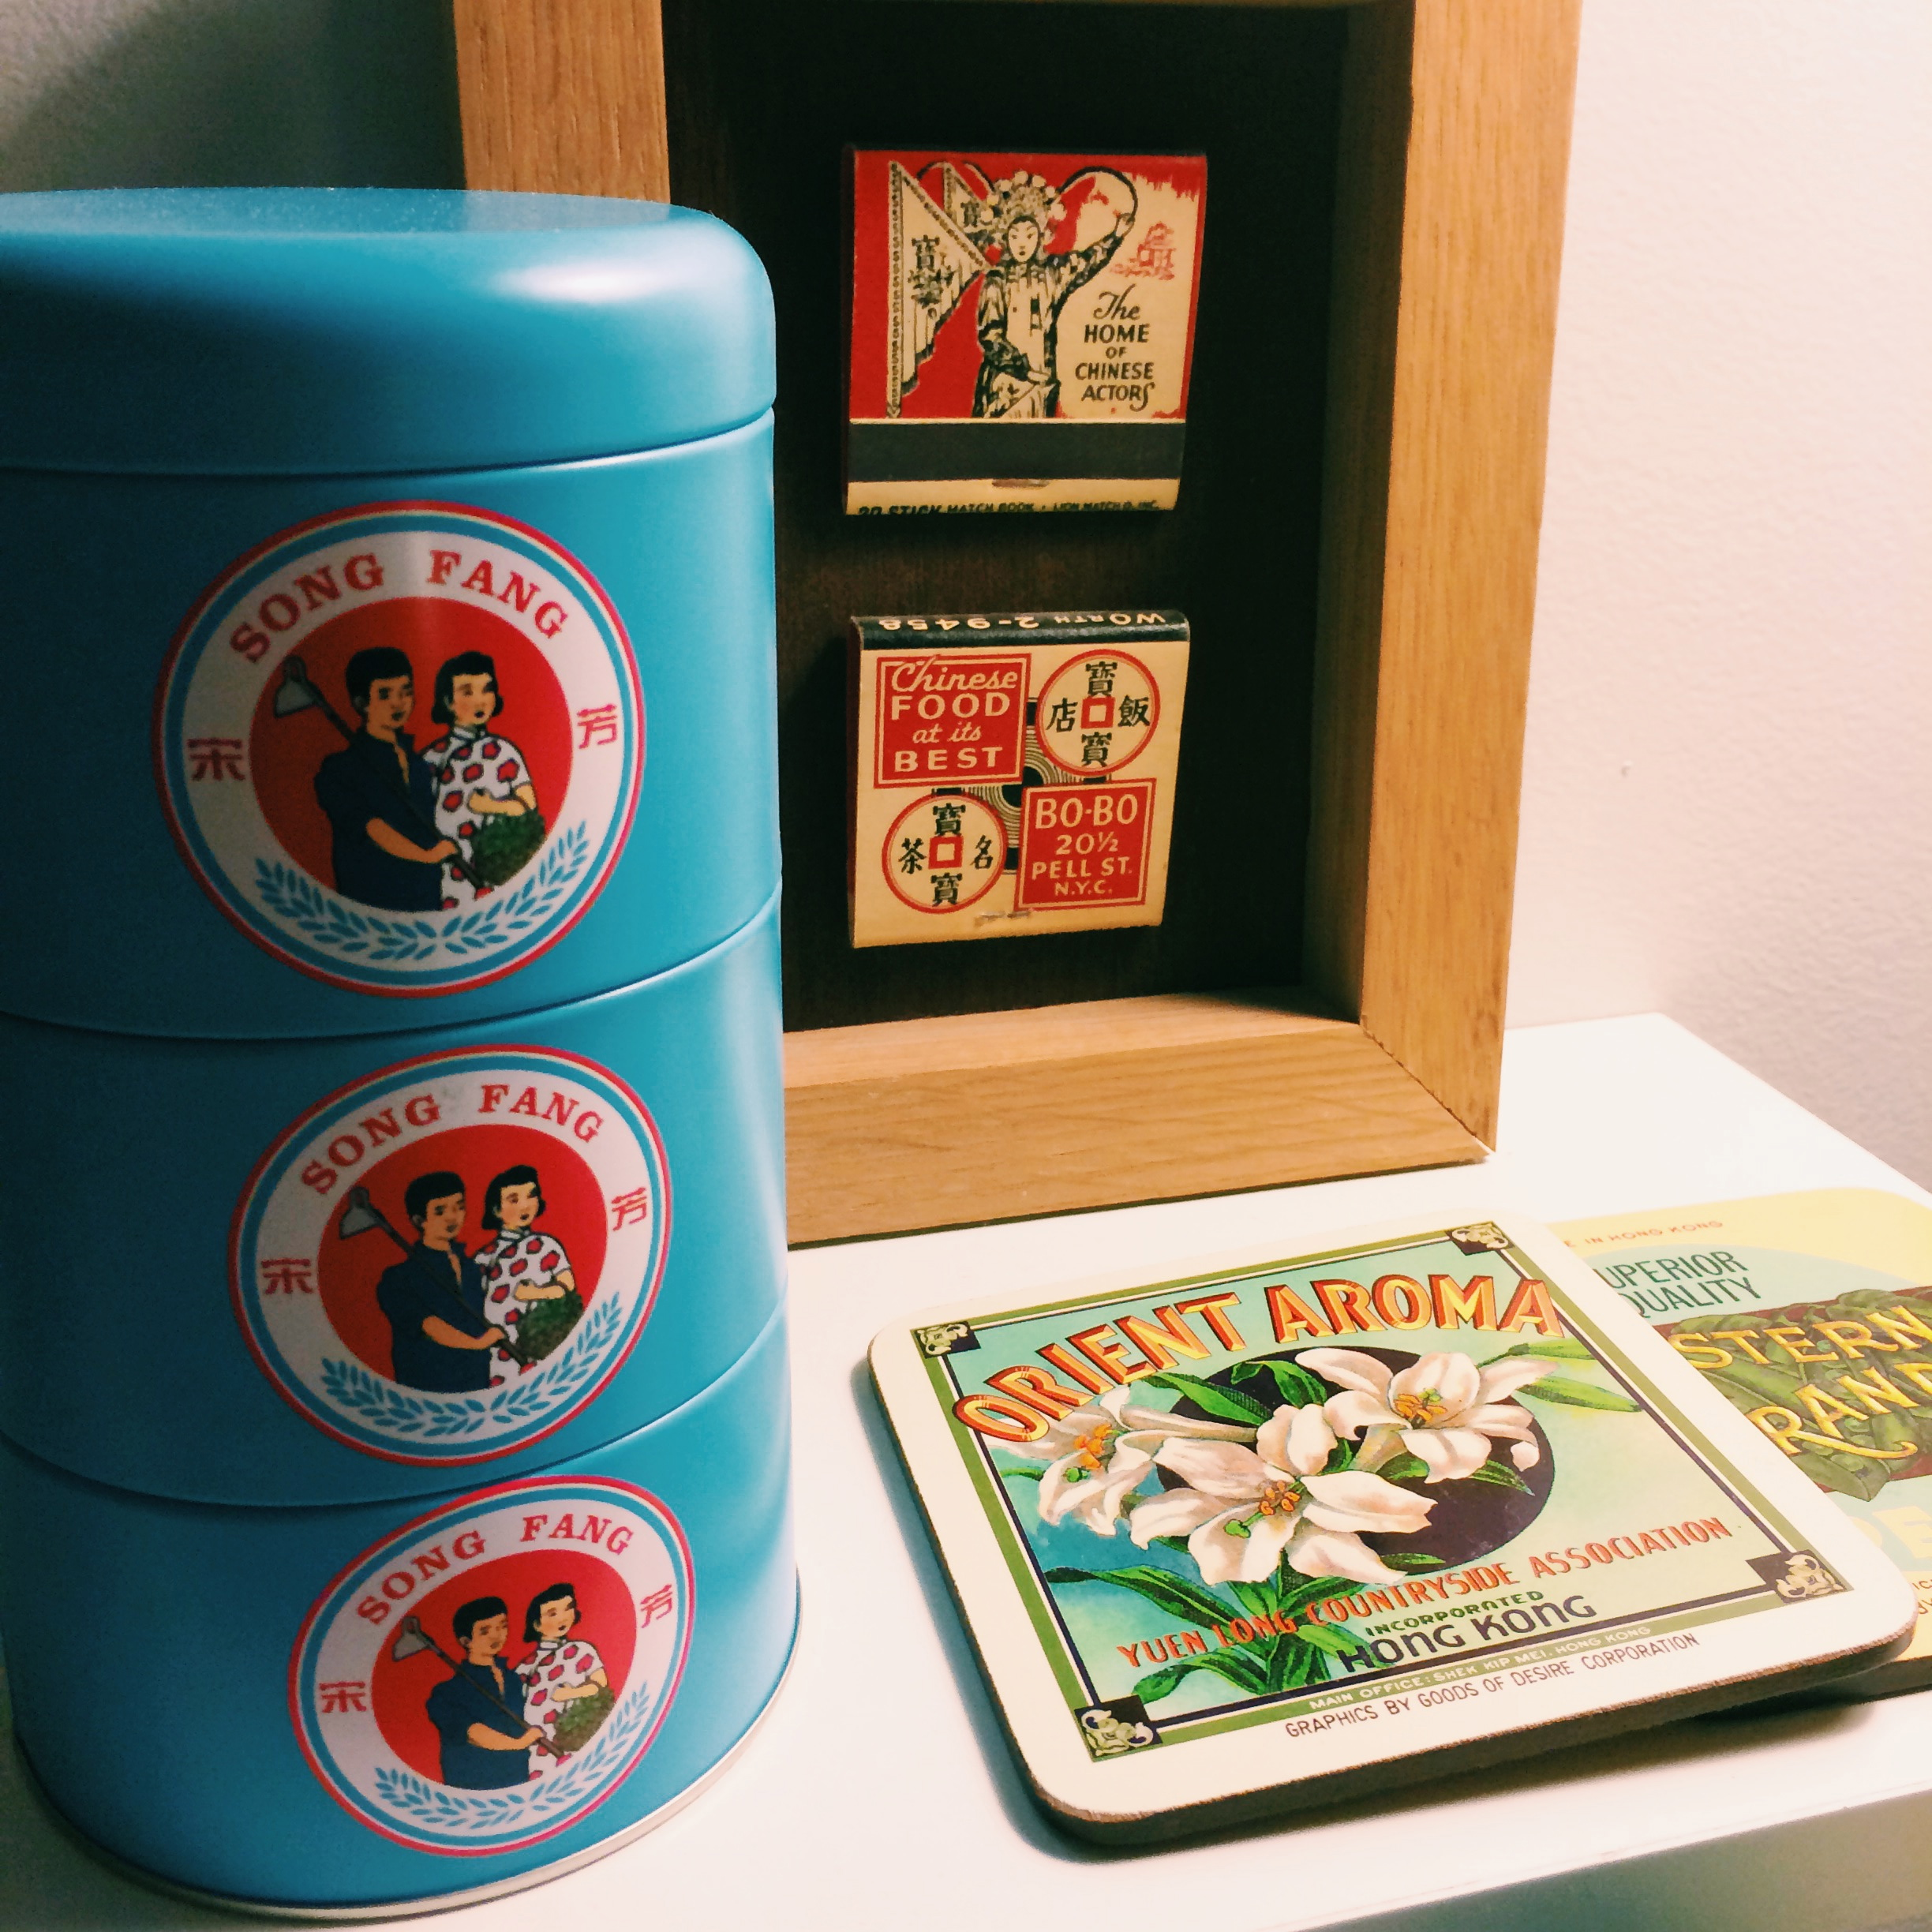 a stacked tin from song fang maison de thé  in shanghai; framed matchbooks from chinatown restaurants; and coasters from  goods of desire  in hong kong.